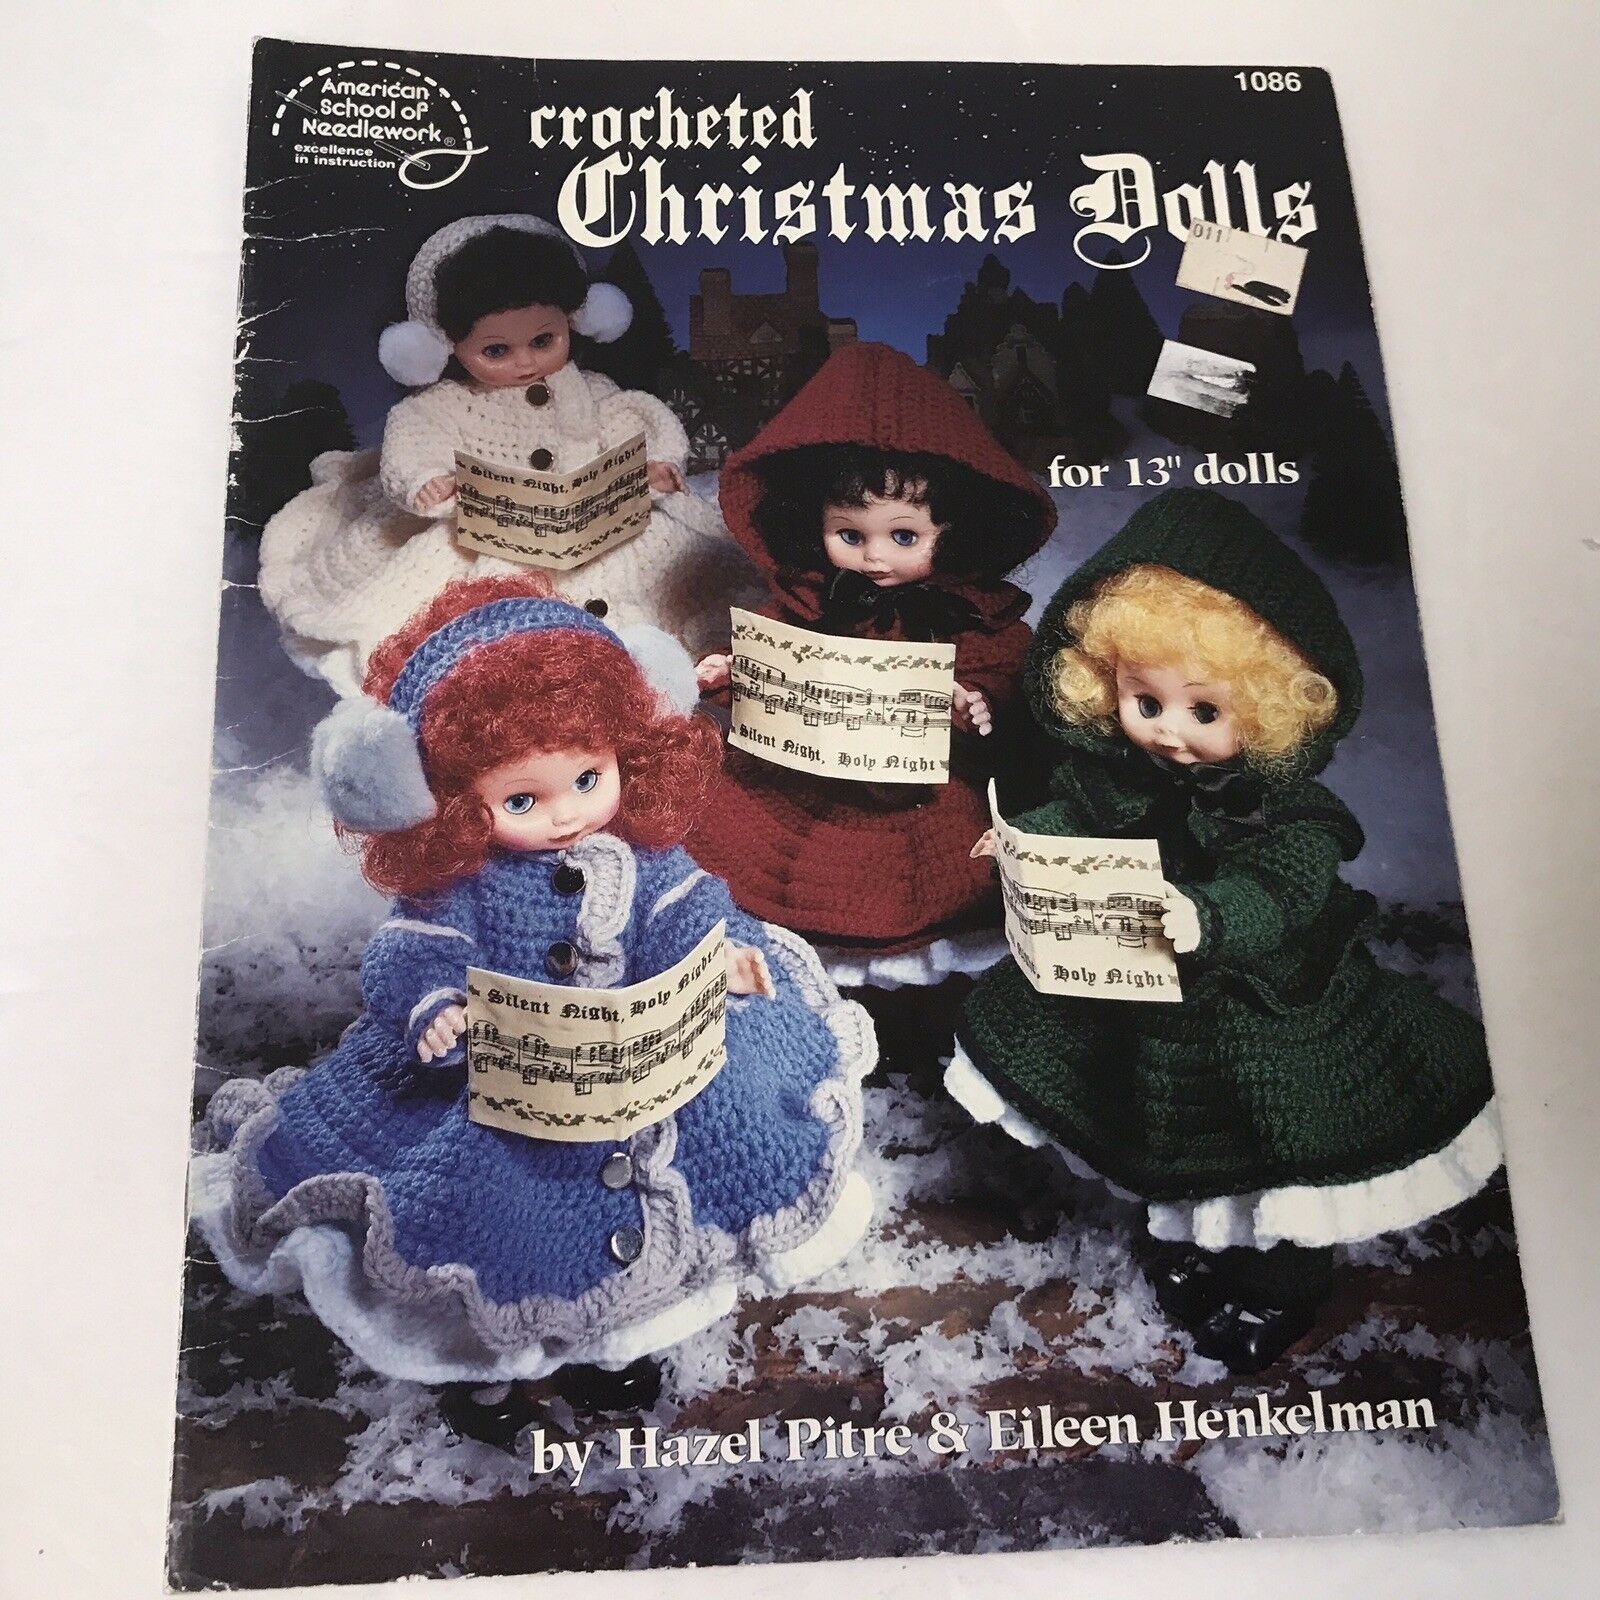 Primary image for Crocheted Christmas Dolls Vtg 1990 Booklet 1086 American School Of Needlework